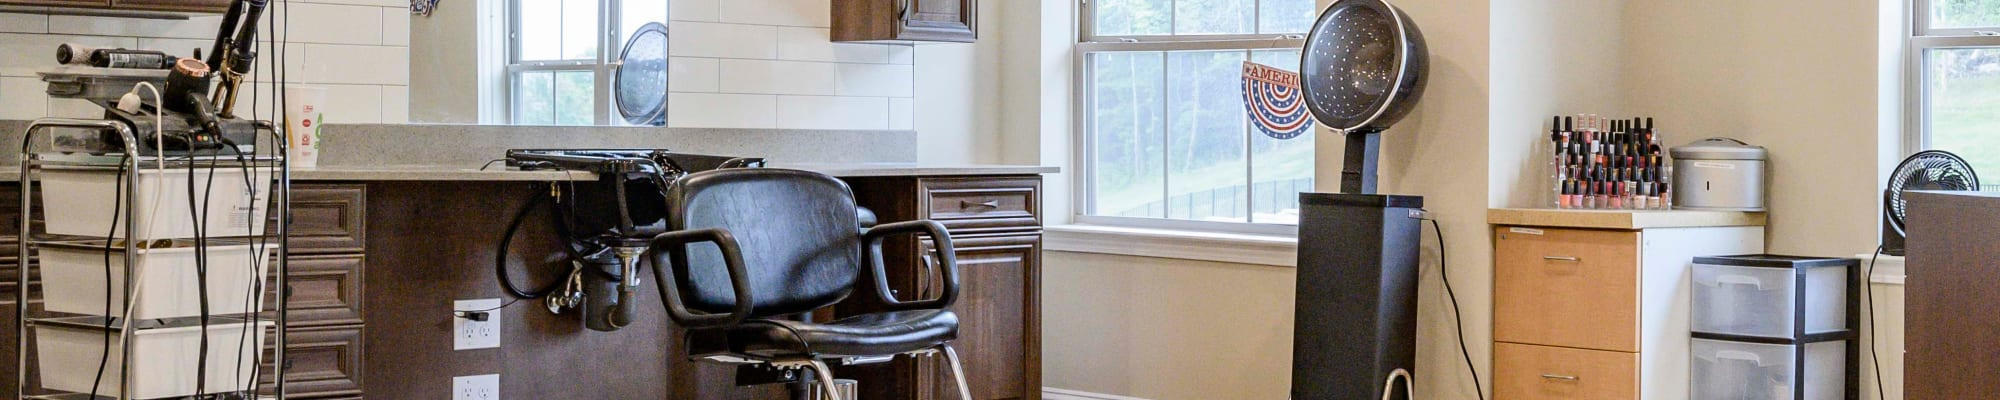 Services & Amenities at Harmony at Brentwood in Brentwood, Tennessee